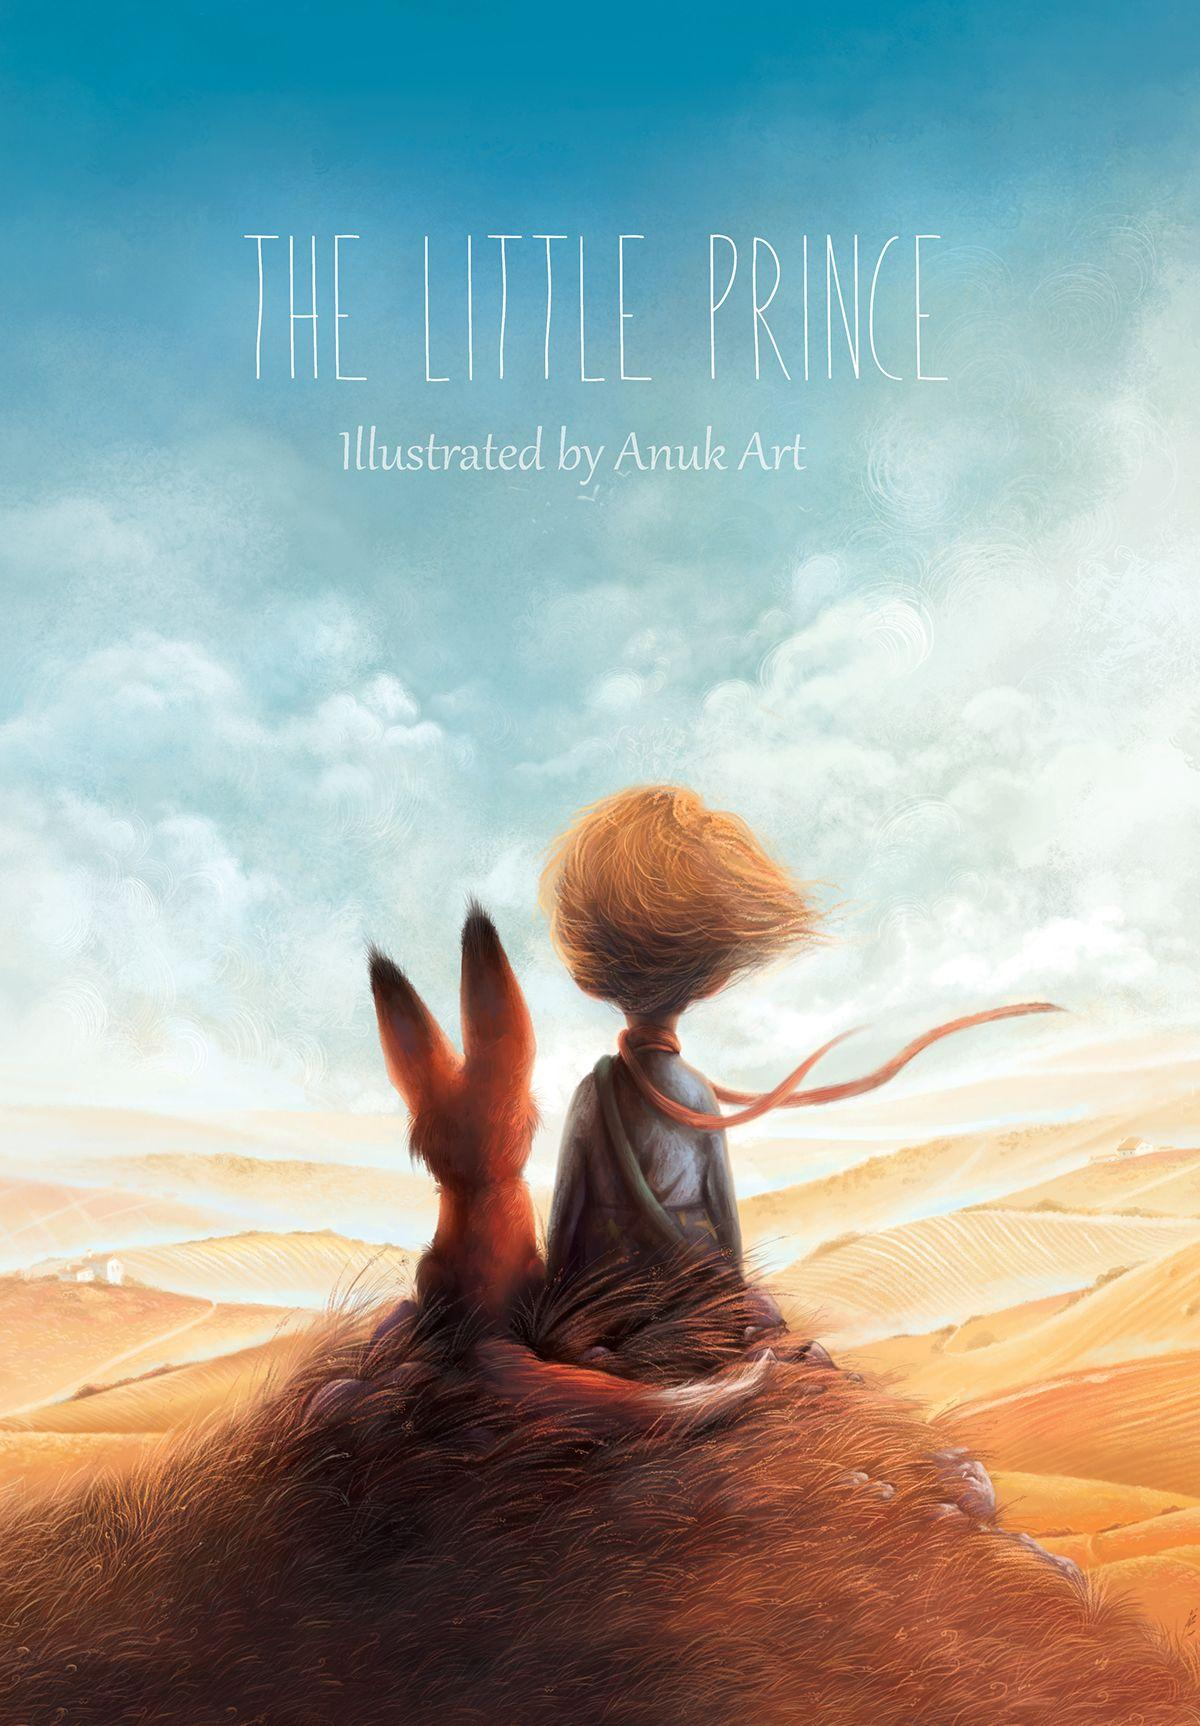 little prince 'little prince' is the 12th track on brian's debut album amen it is a first-time collaboration between niki & brian nicole zefanya, is an indonesian r&b artist raised in the same city as.